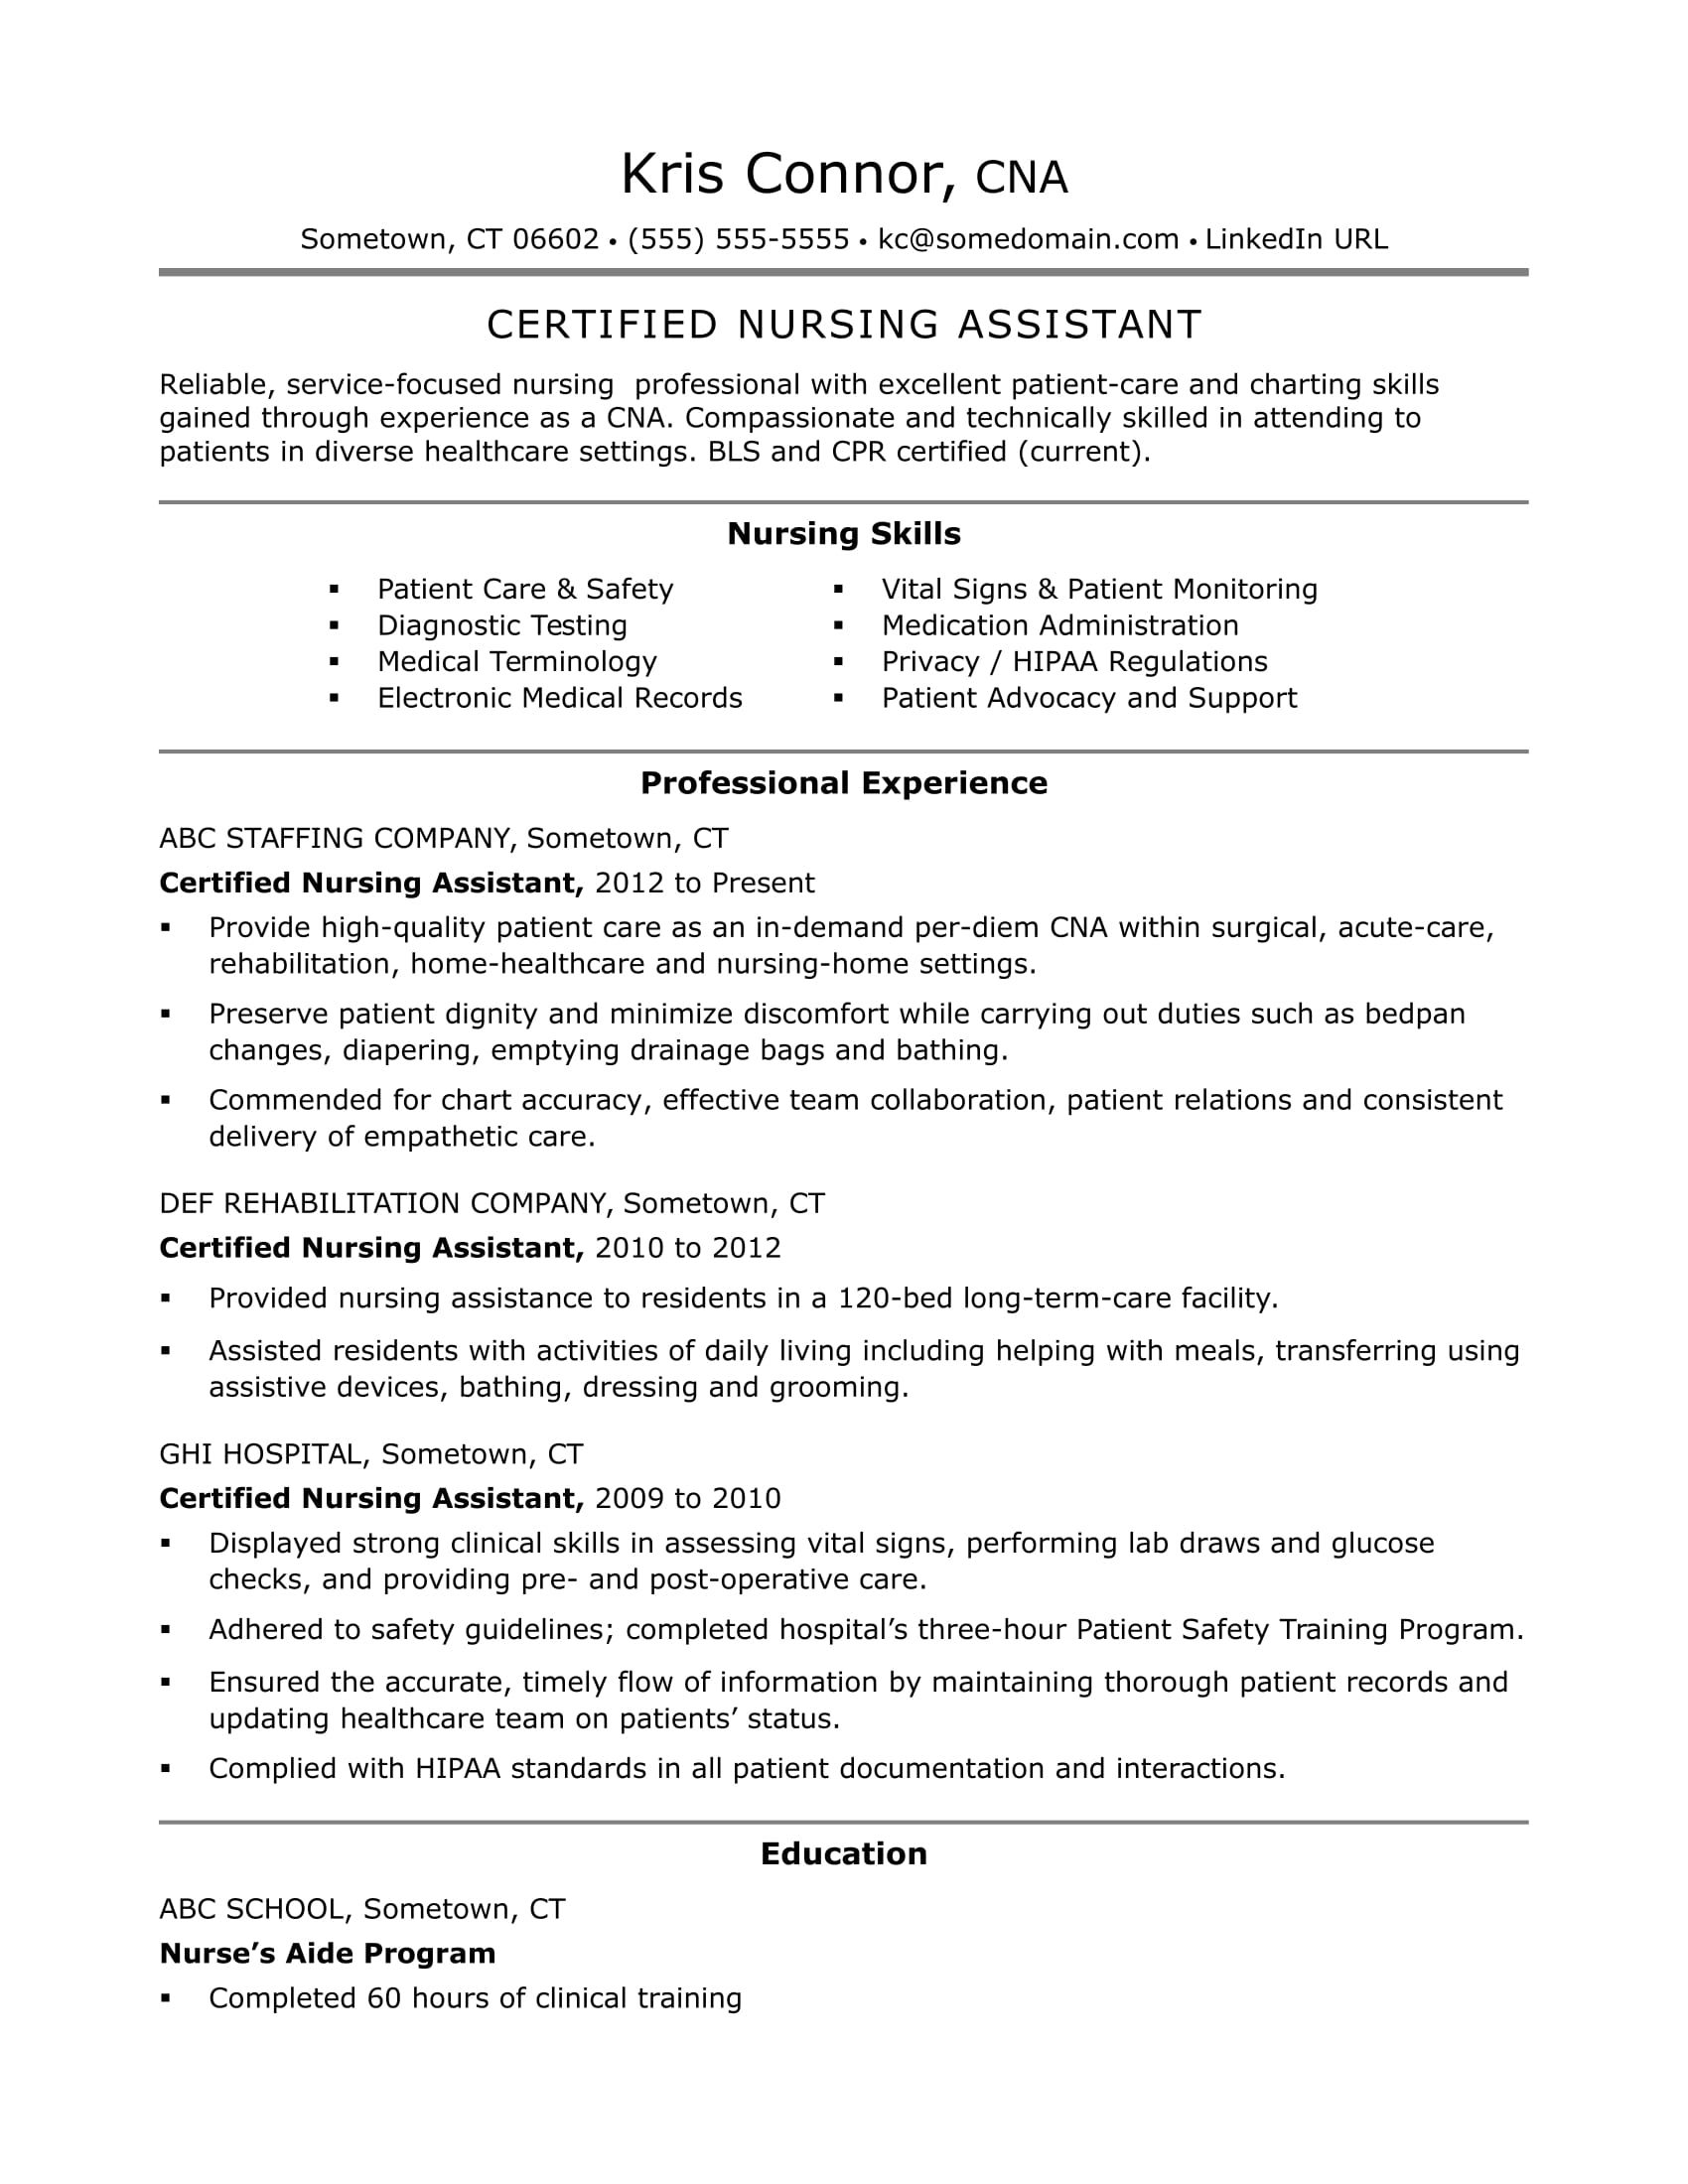 Attractive CNA Resume Example Regard To Resume Ideas For Skills